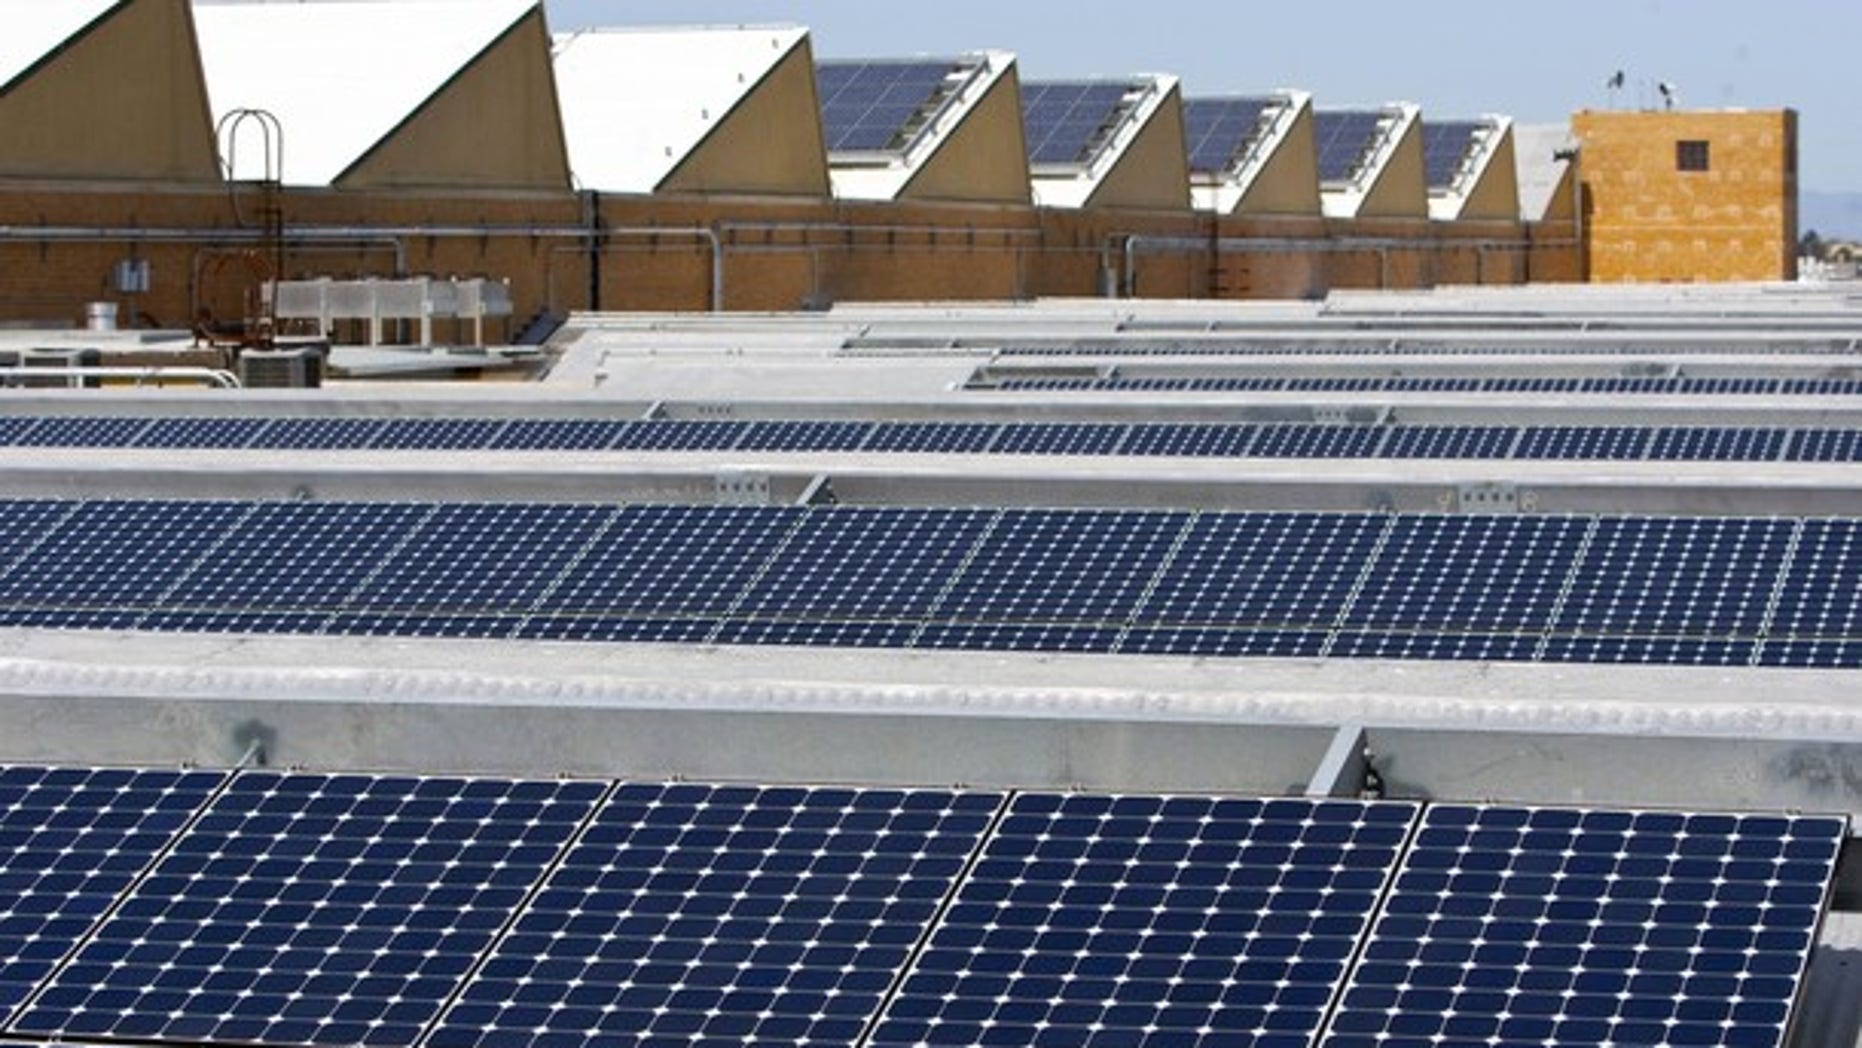 Solar panels sit on the roof of SunPower Corporation in Richmond, California, in this file picture taken March 18, 2010.